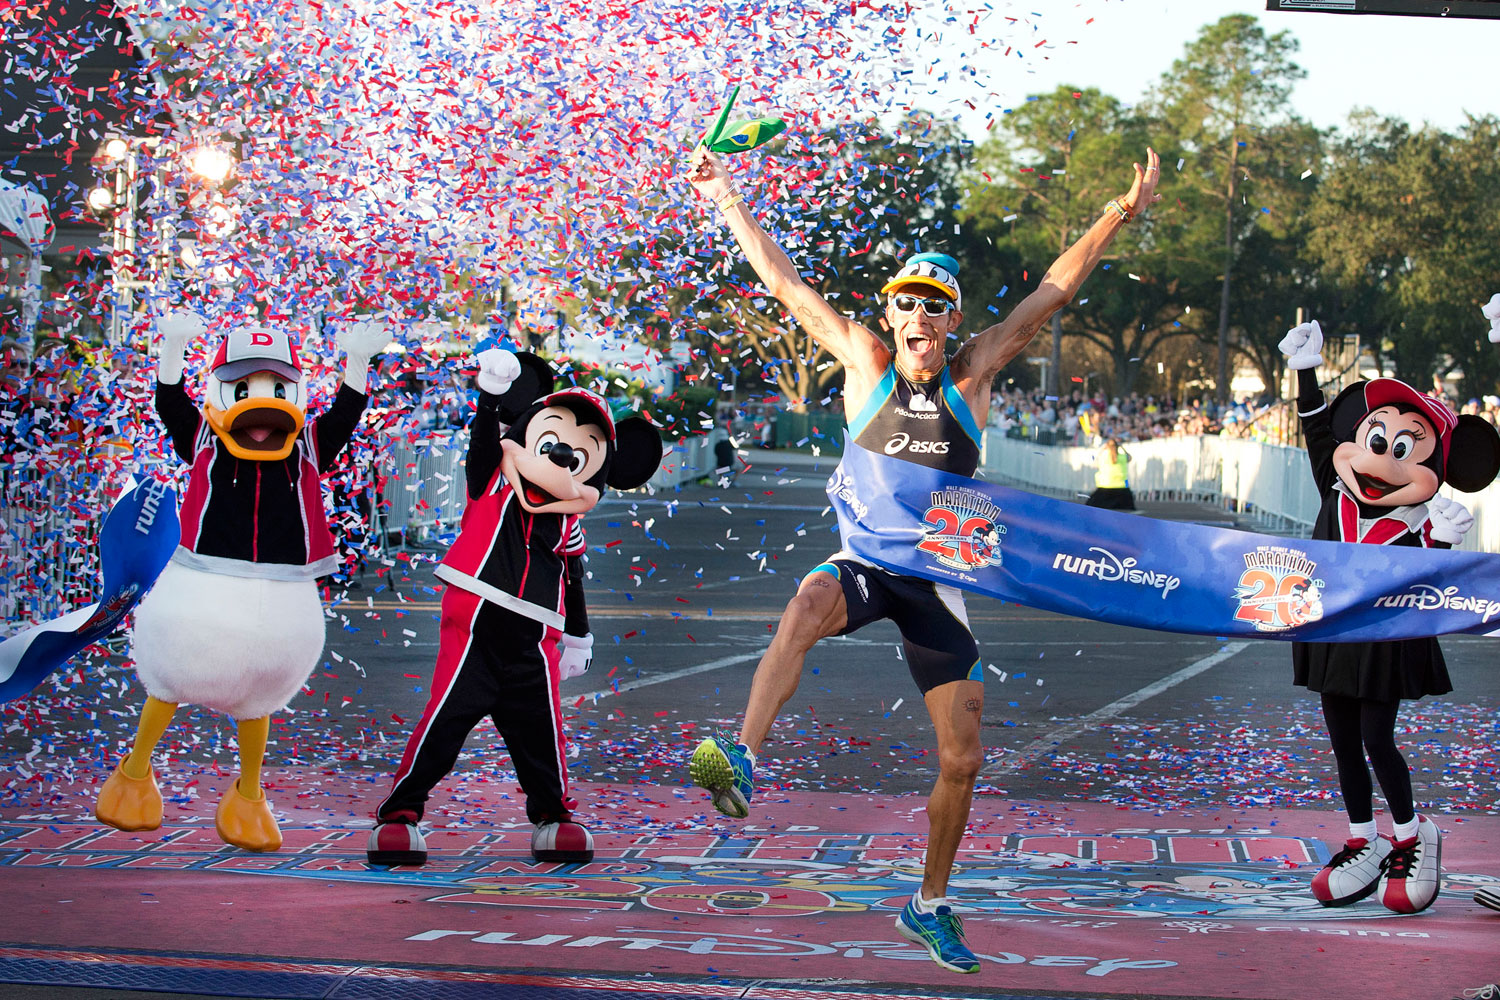 Adriano Bastos crosses the finish line to win the 20th Annual Walt Disney World Marathon at Walt Disney World Resort in Lake Buena Vista, Florida.